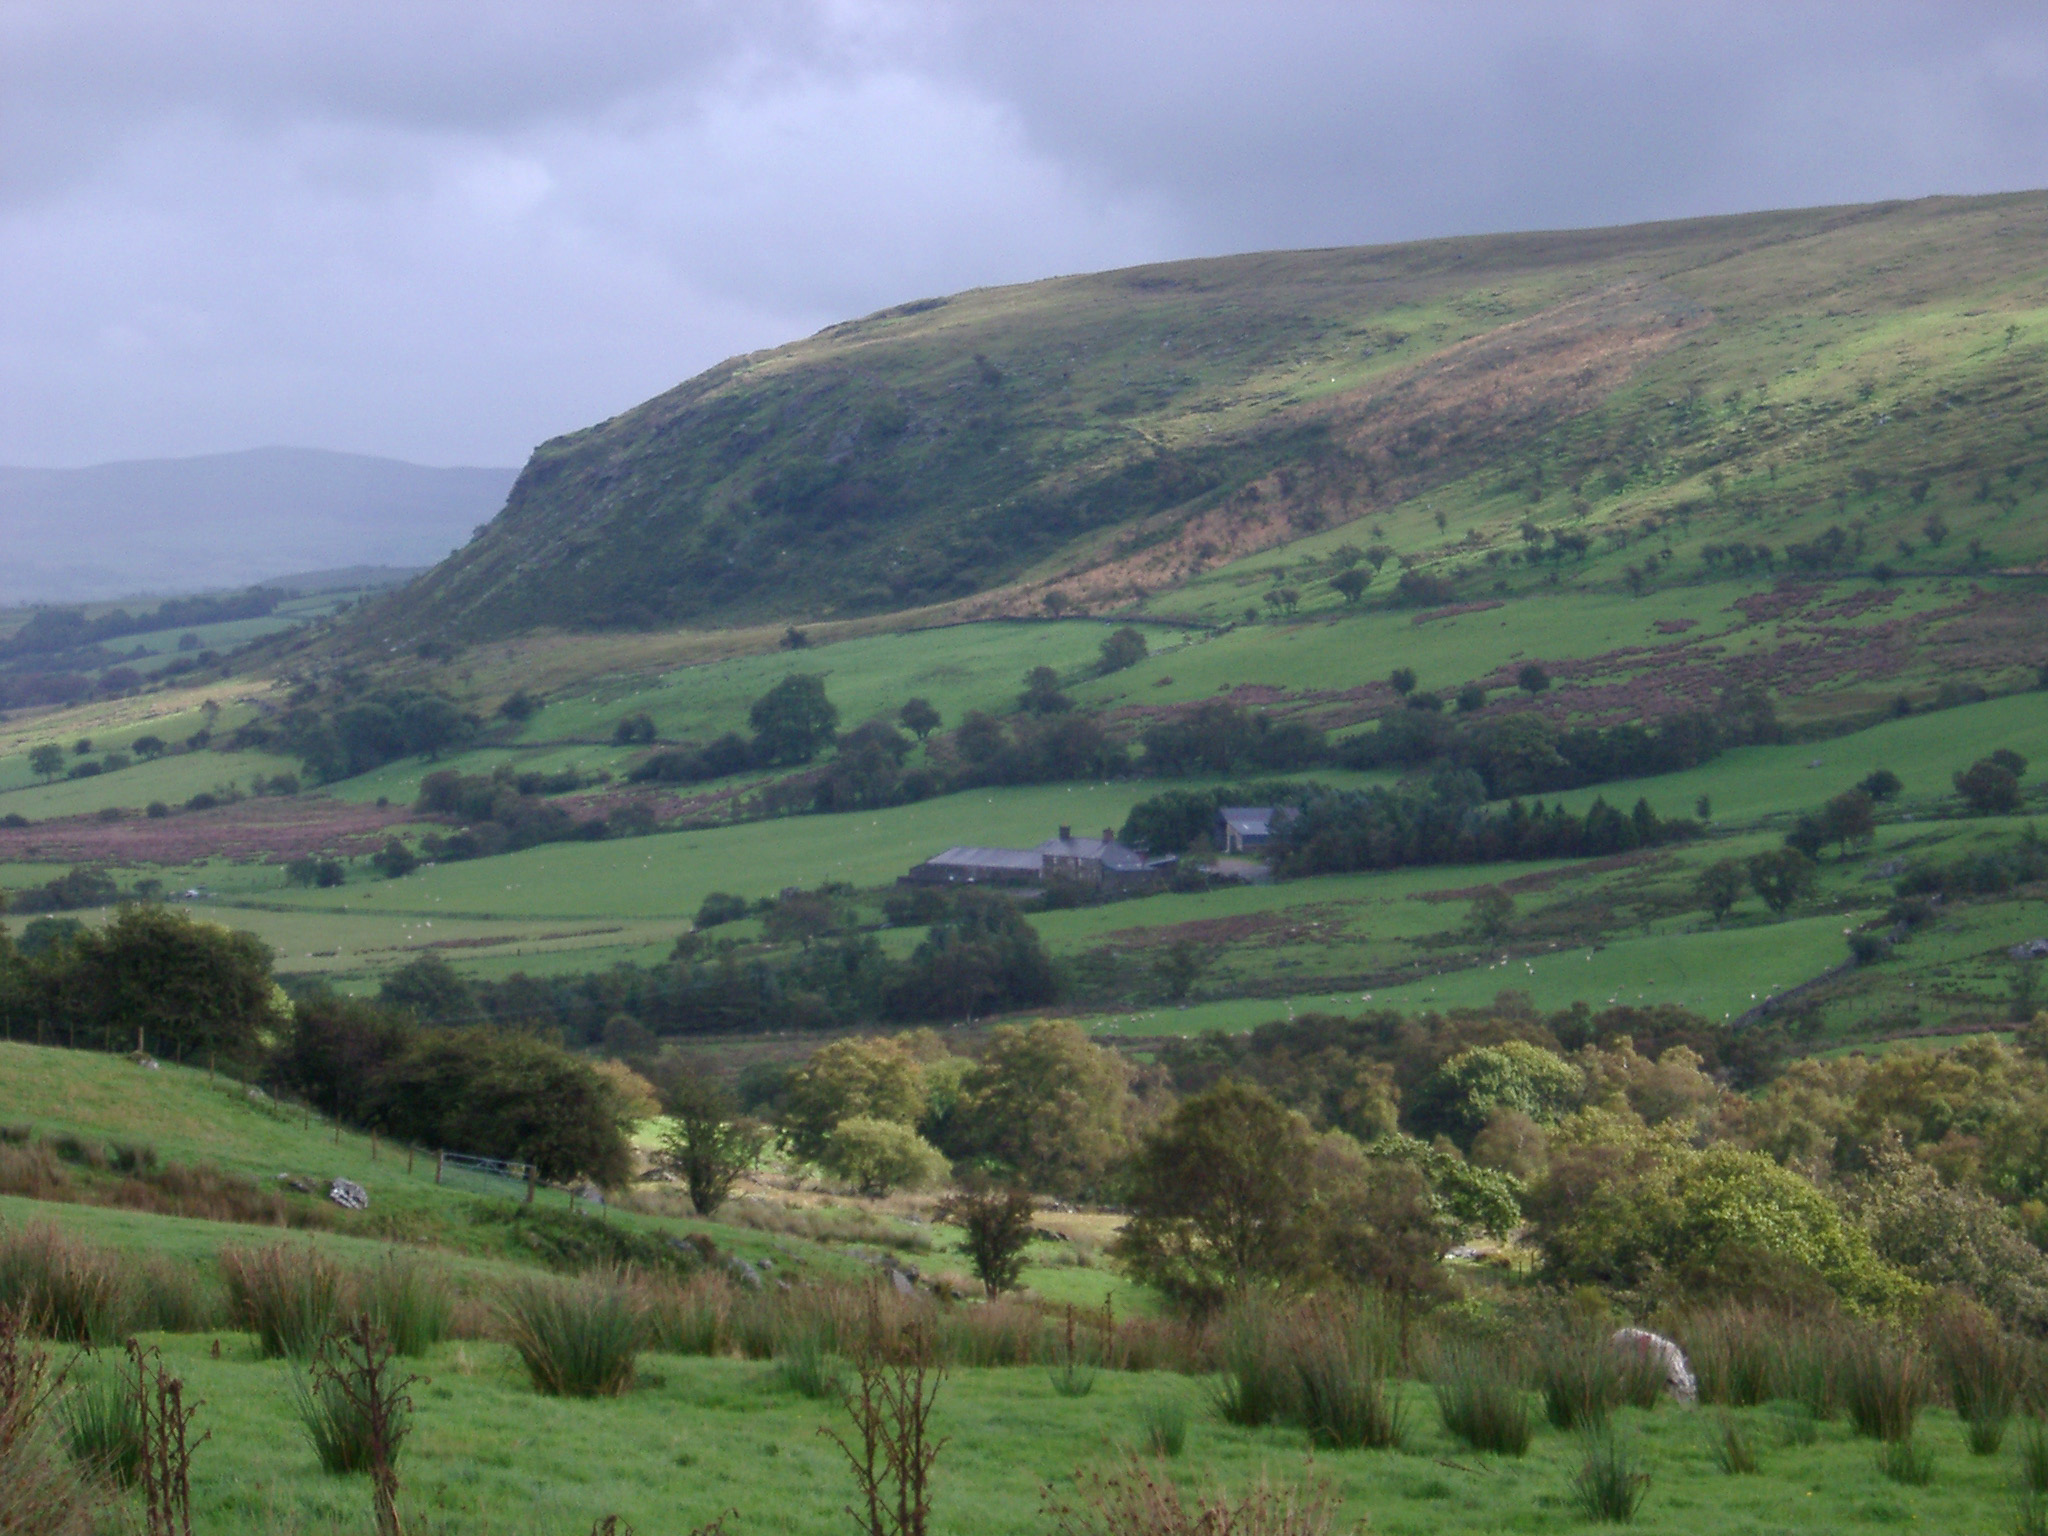 Lush green valley and hill in the Welsh countryside on a wet cloudy day